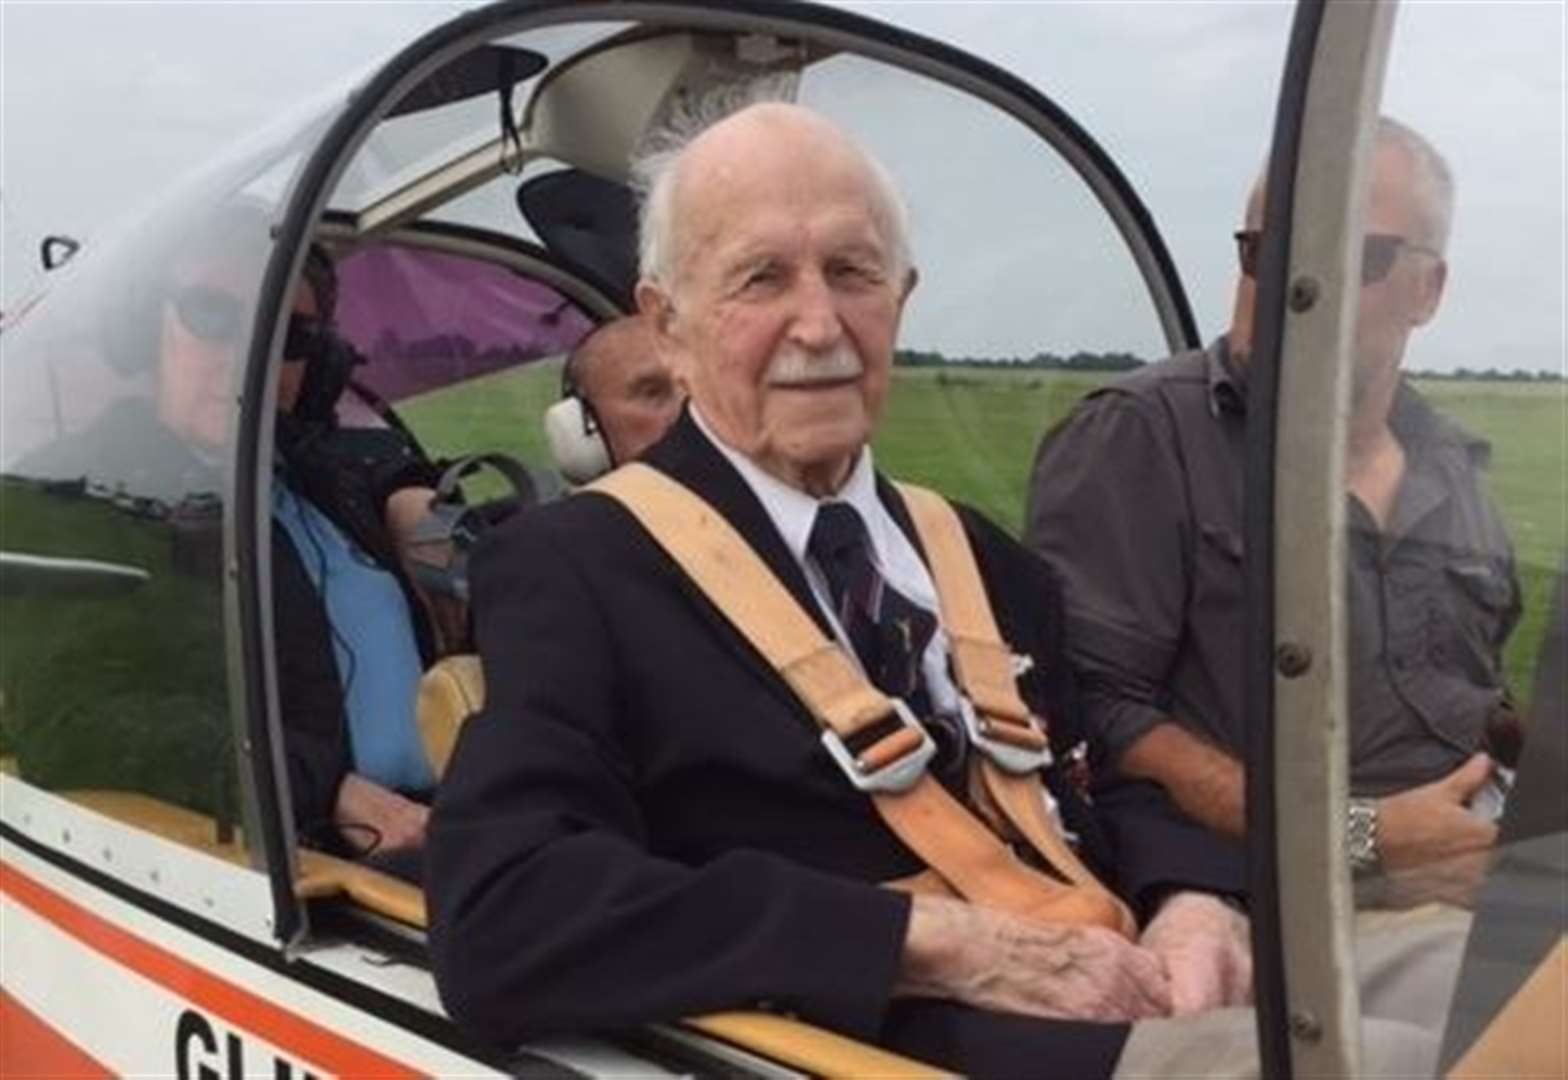 Donington WWII veteran is flown to RAF reunion on his 94th birthday